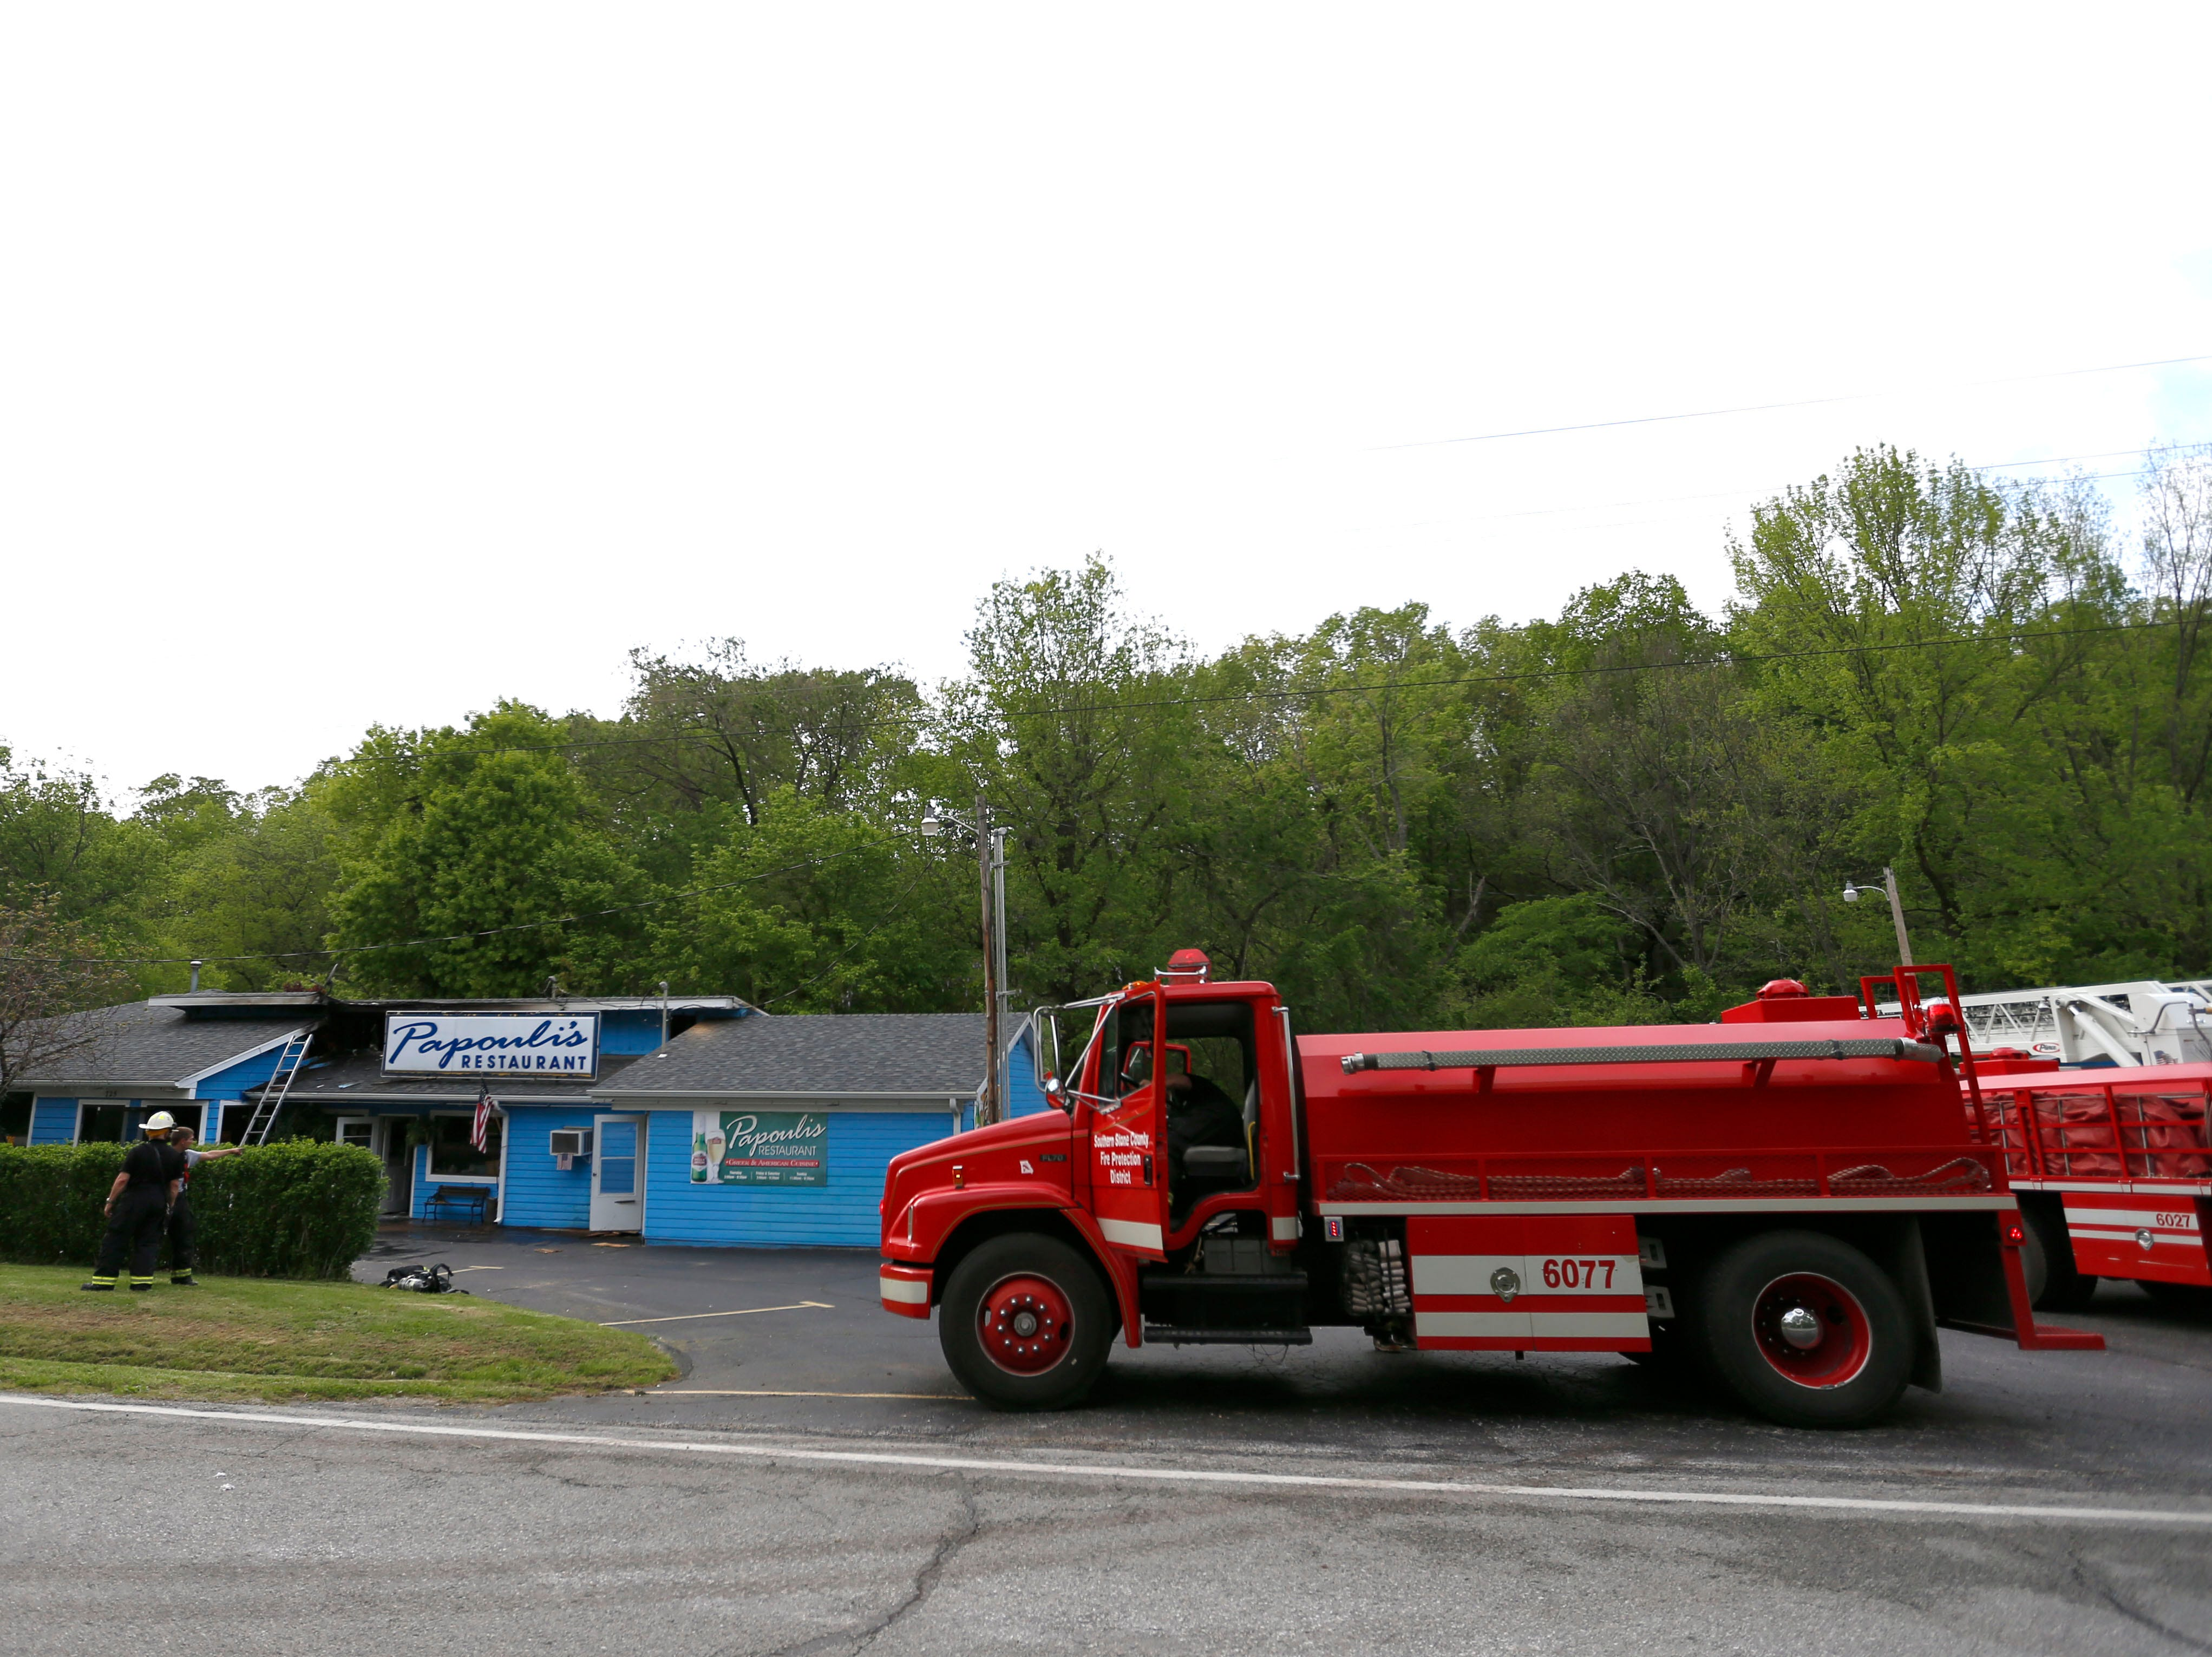 A fire broke out at Papouli's Restaurant shortly after 3 p.m.  on Wednesday, May 1, 2019, moderately damaging the Greek-style establishment beloved by many people across the Ozarks.